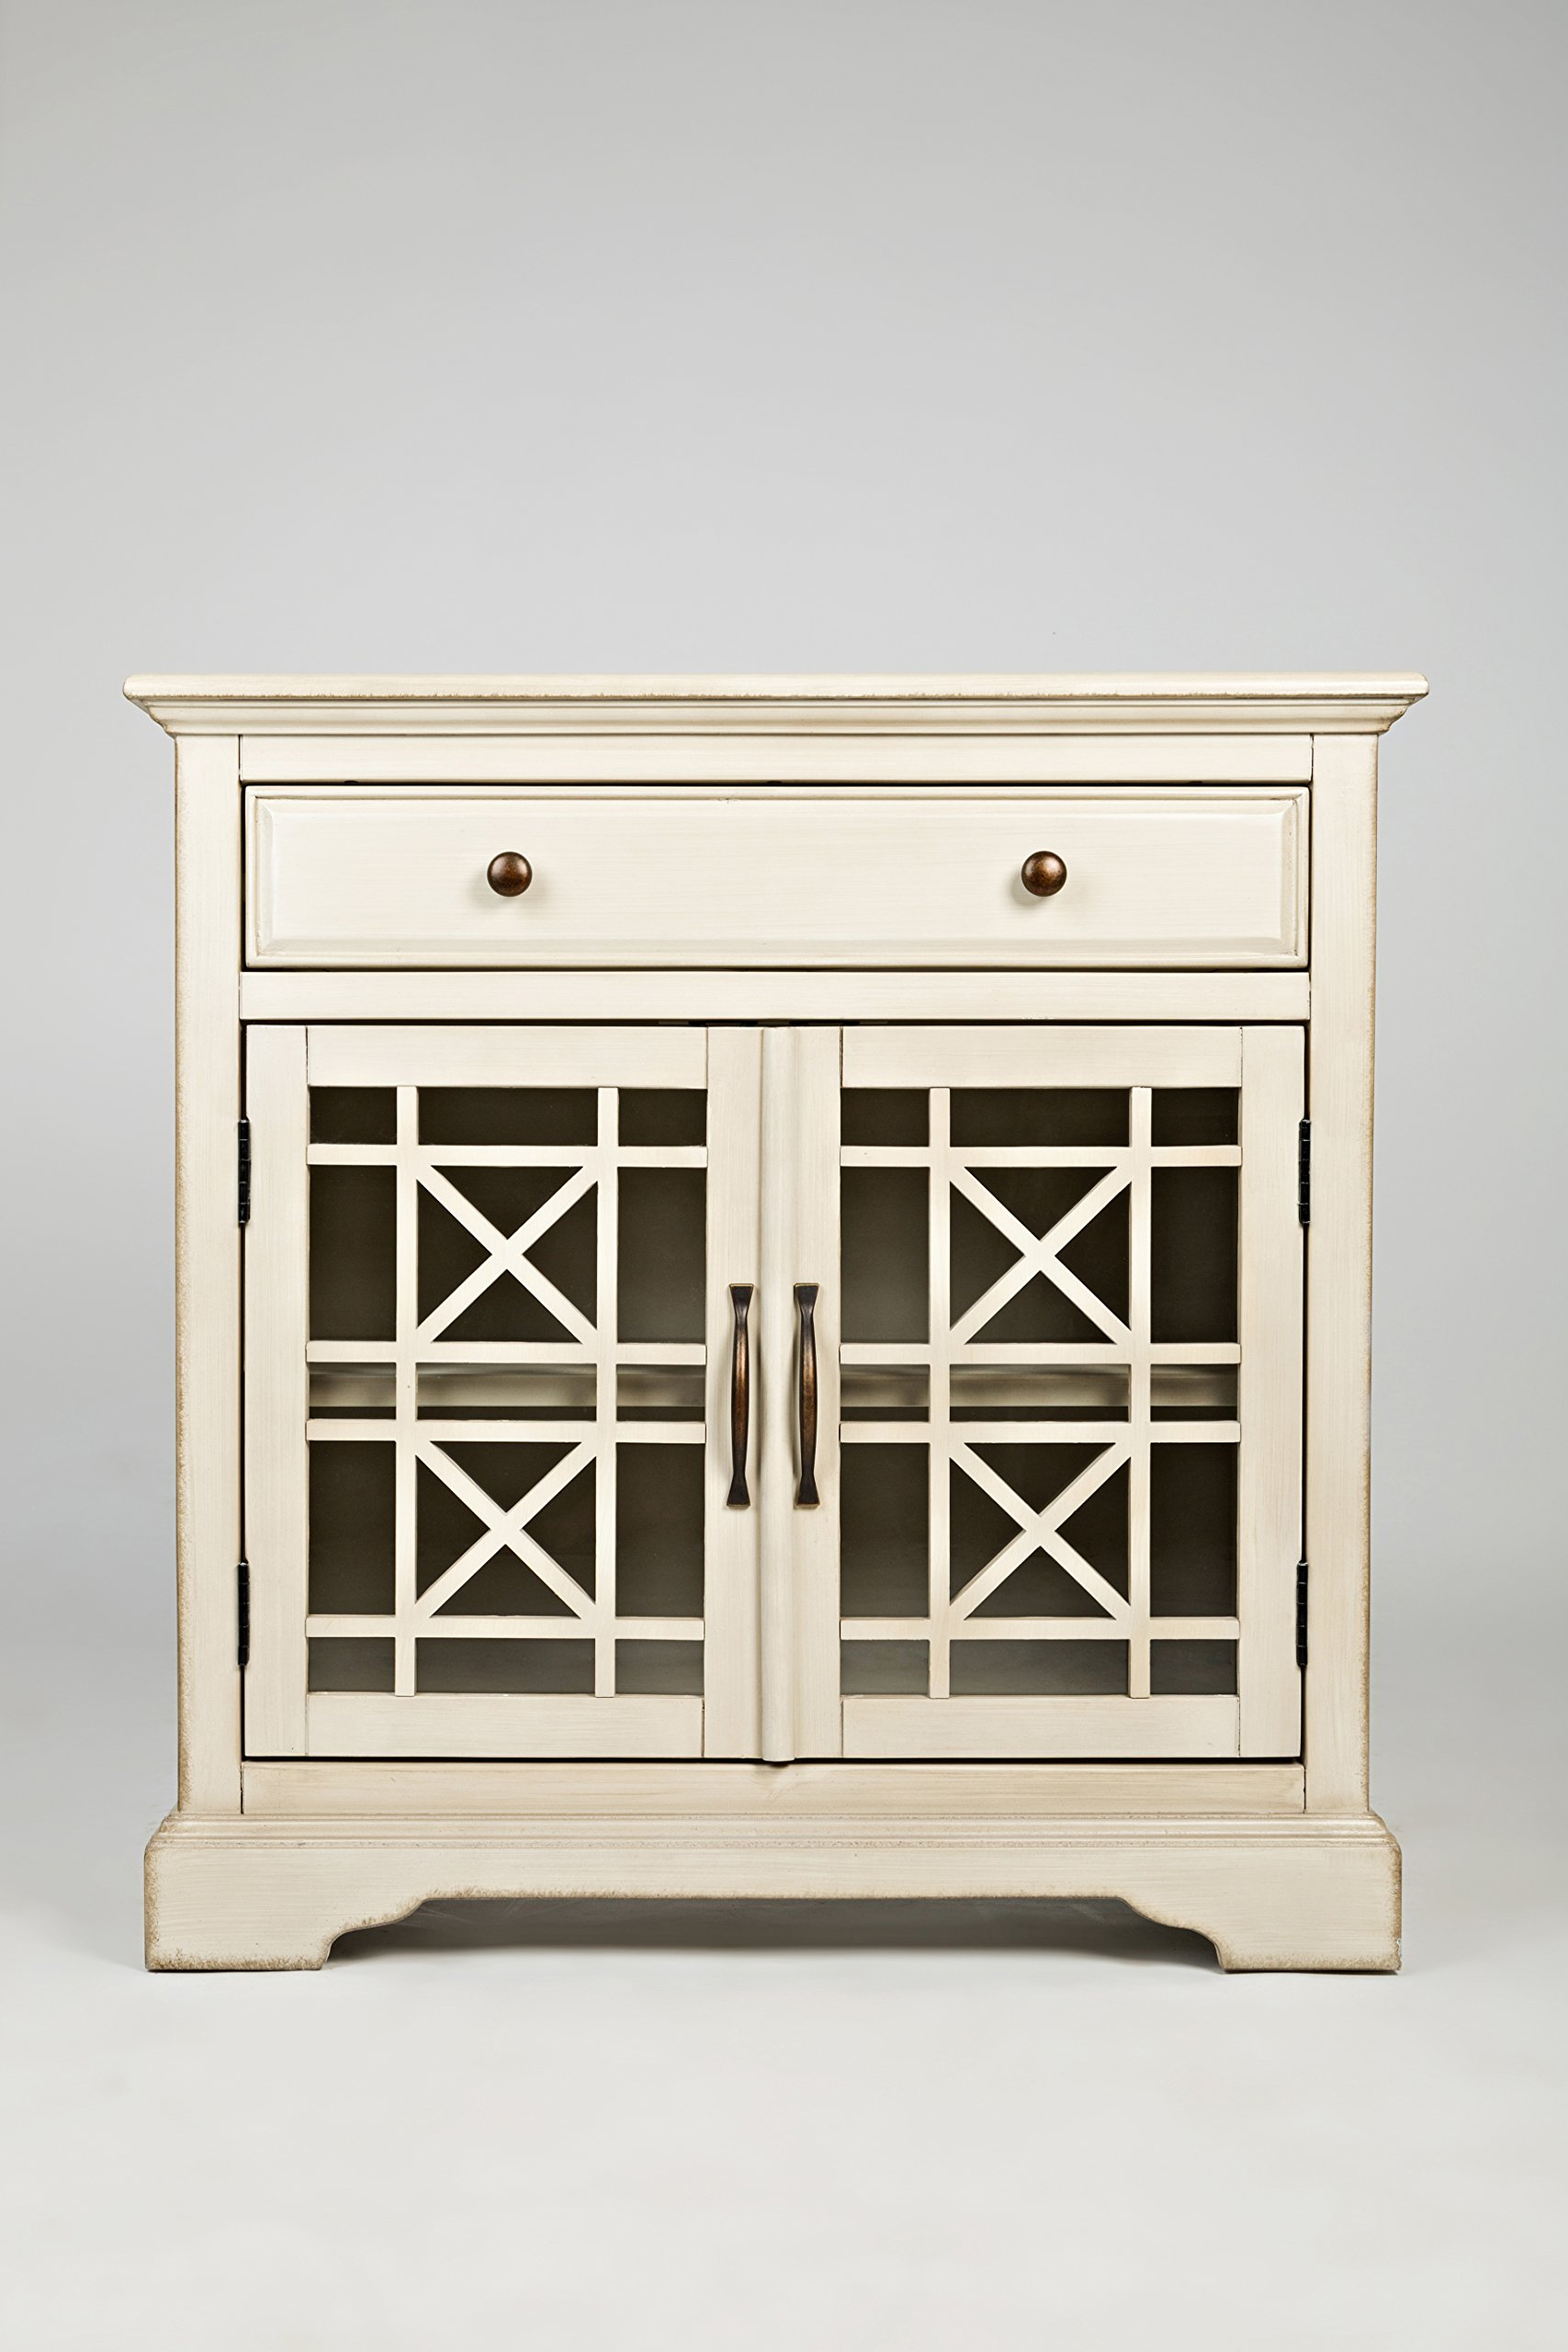 "Jofran: , Craftsman, Accent Chest, 32""W X 15""D X 32""H, Antique Cream Finish, (Set of 1) - One drawer Two doors Drawer dimensions: 26""W x 12""D x 8. 75""H - dressers-bedroom-furniture, bedroom-furniture, bedroom - 81Cb9rJswAL -"